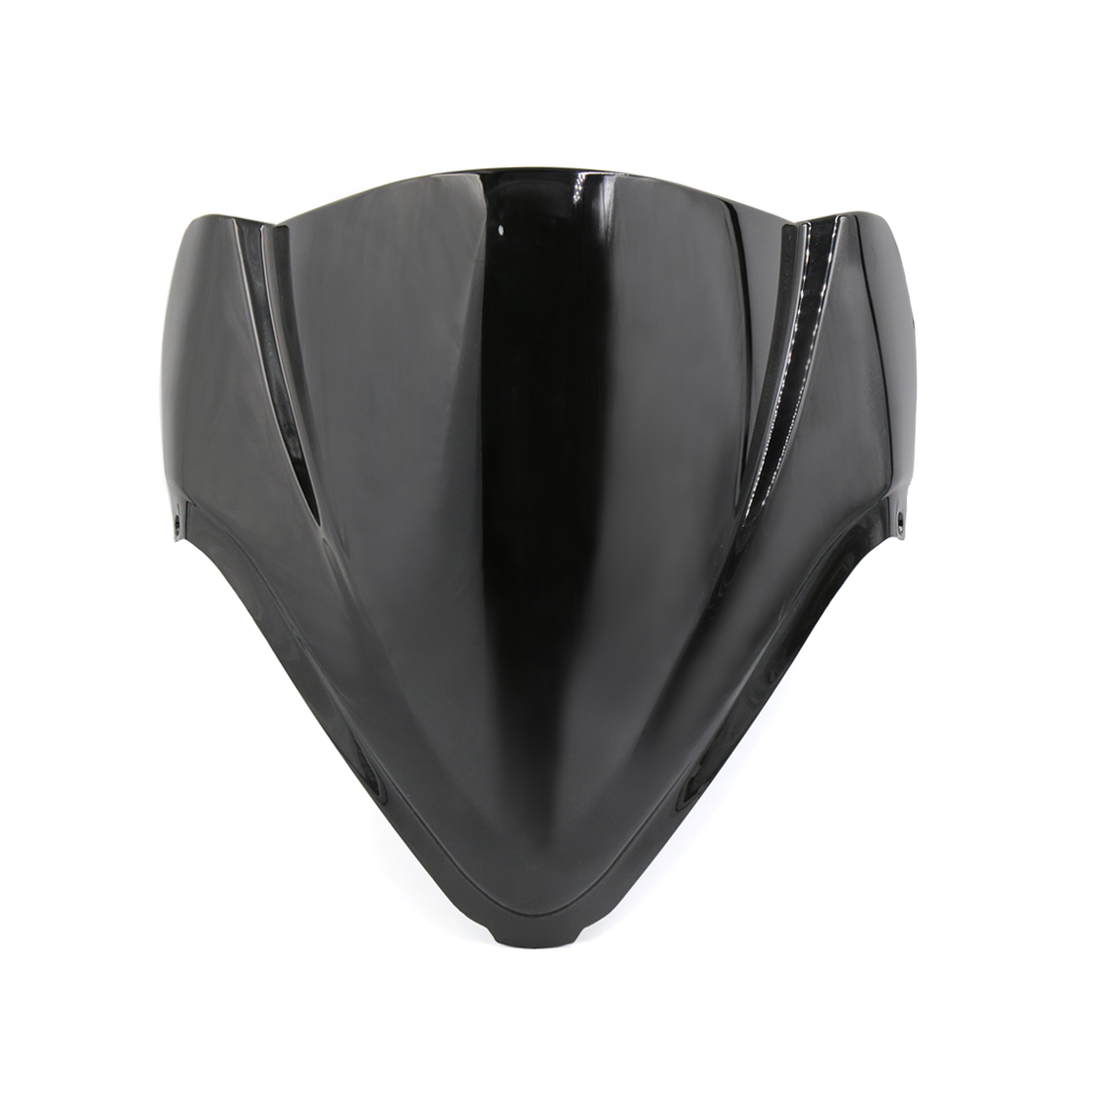 Black ABS Plastic Motorcycle Windshield Windscreen for 08-14 GSX1300R Hayabusa - image 3 of 3